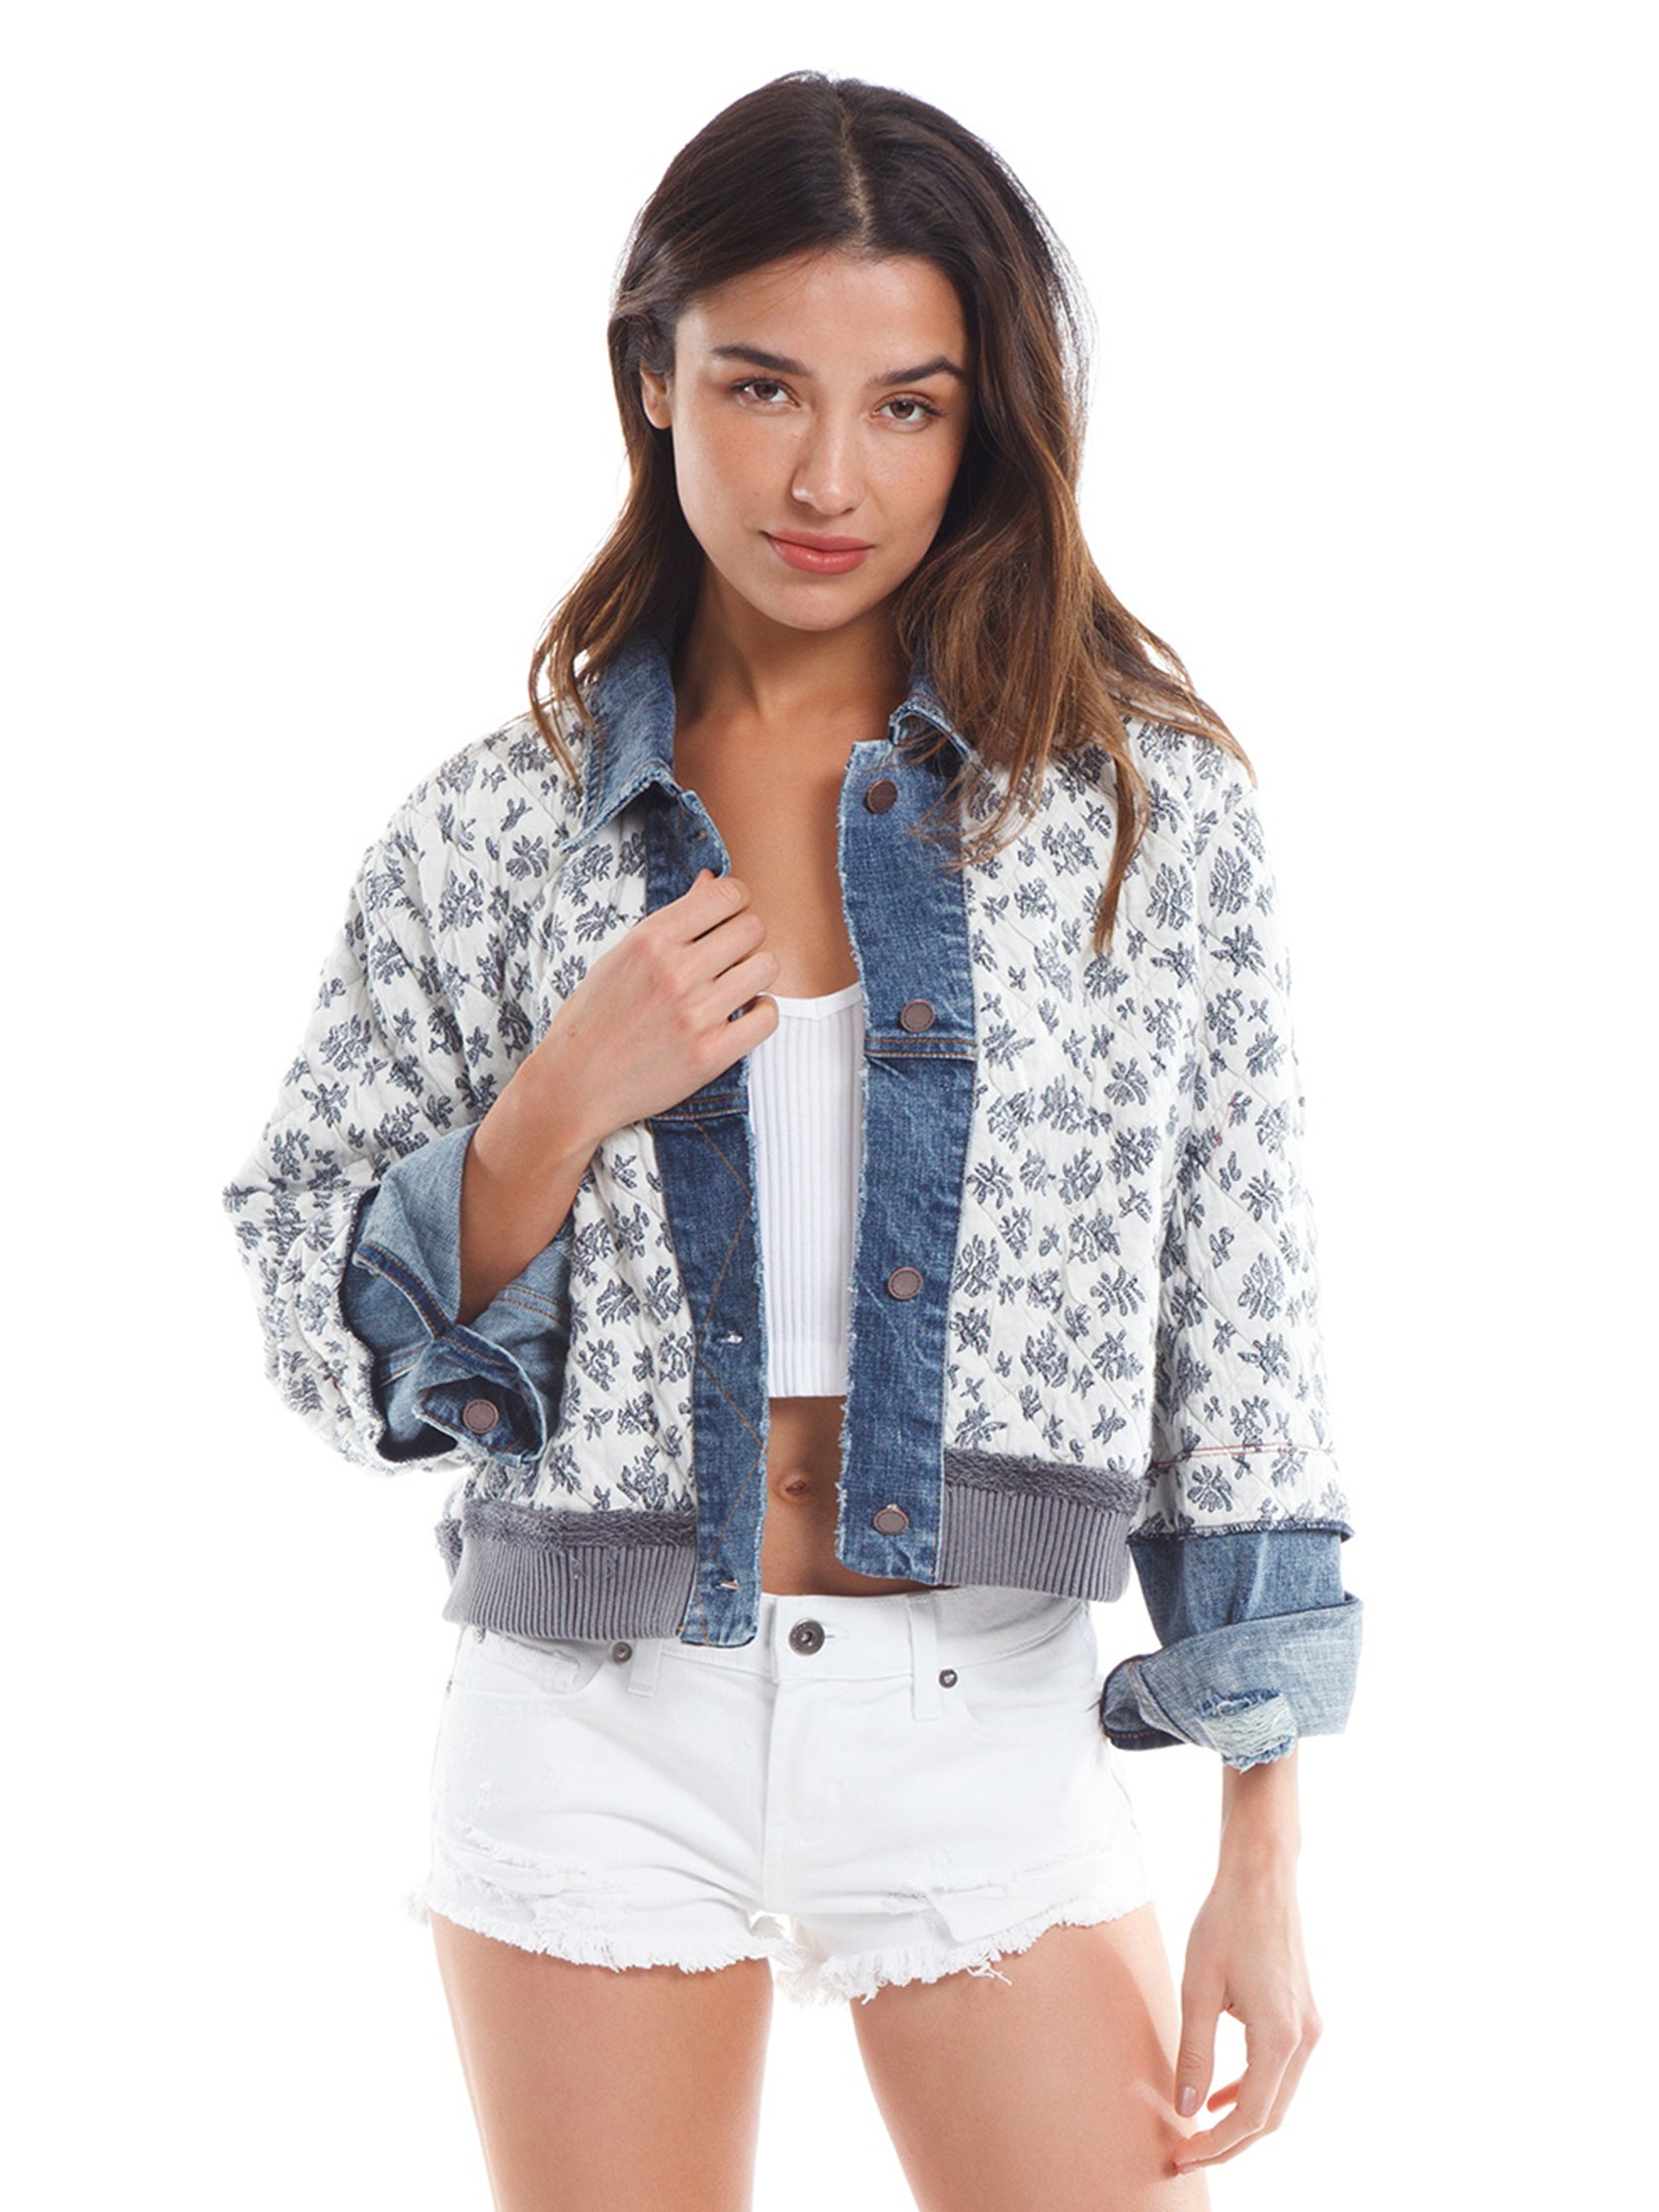 Girl outfit in a jacket rental from Free People called Ditsy Denim Jacket